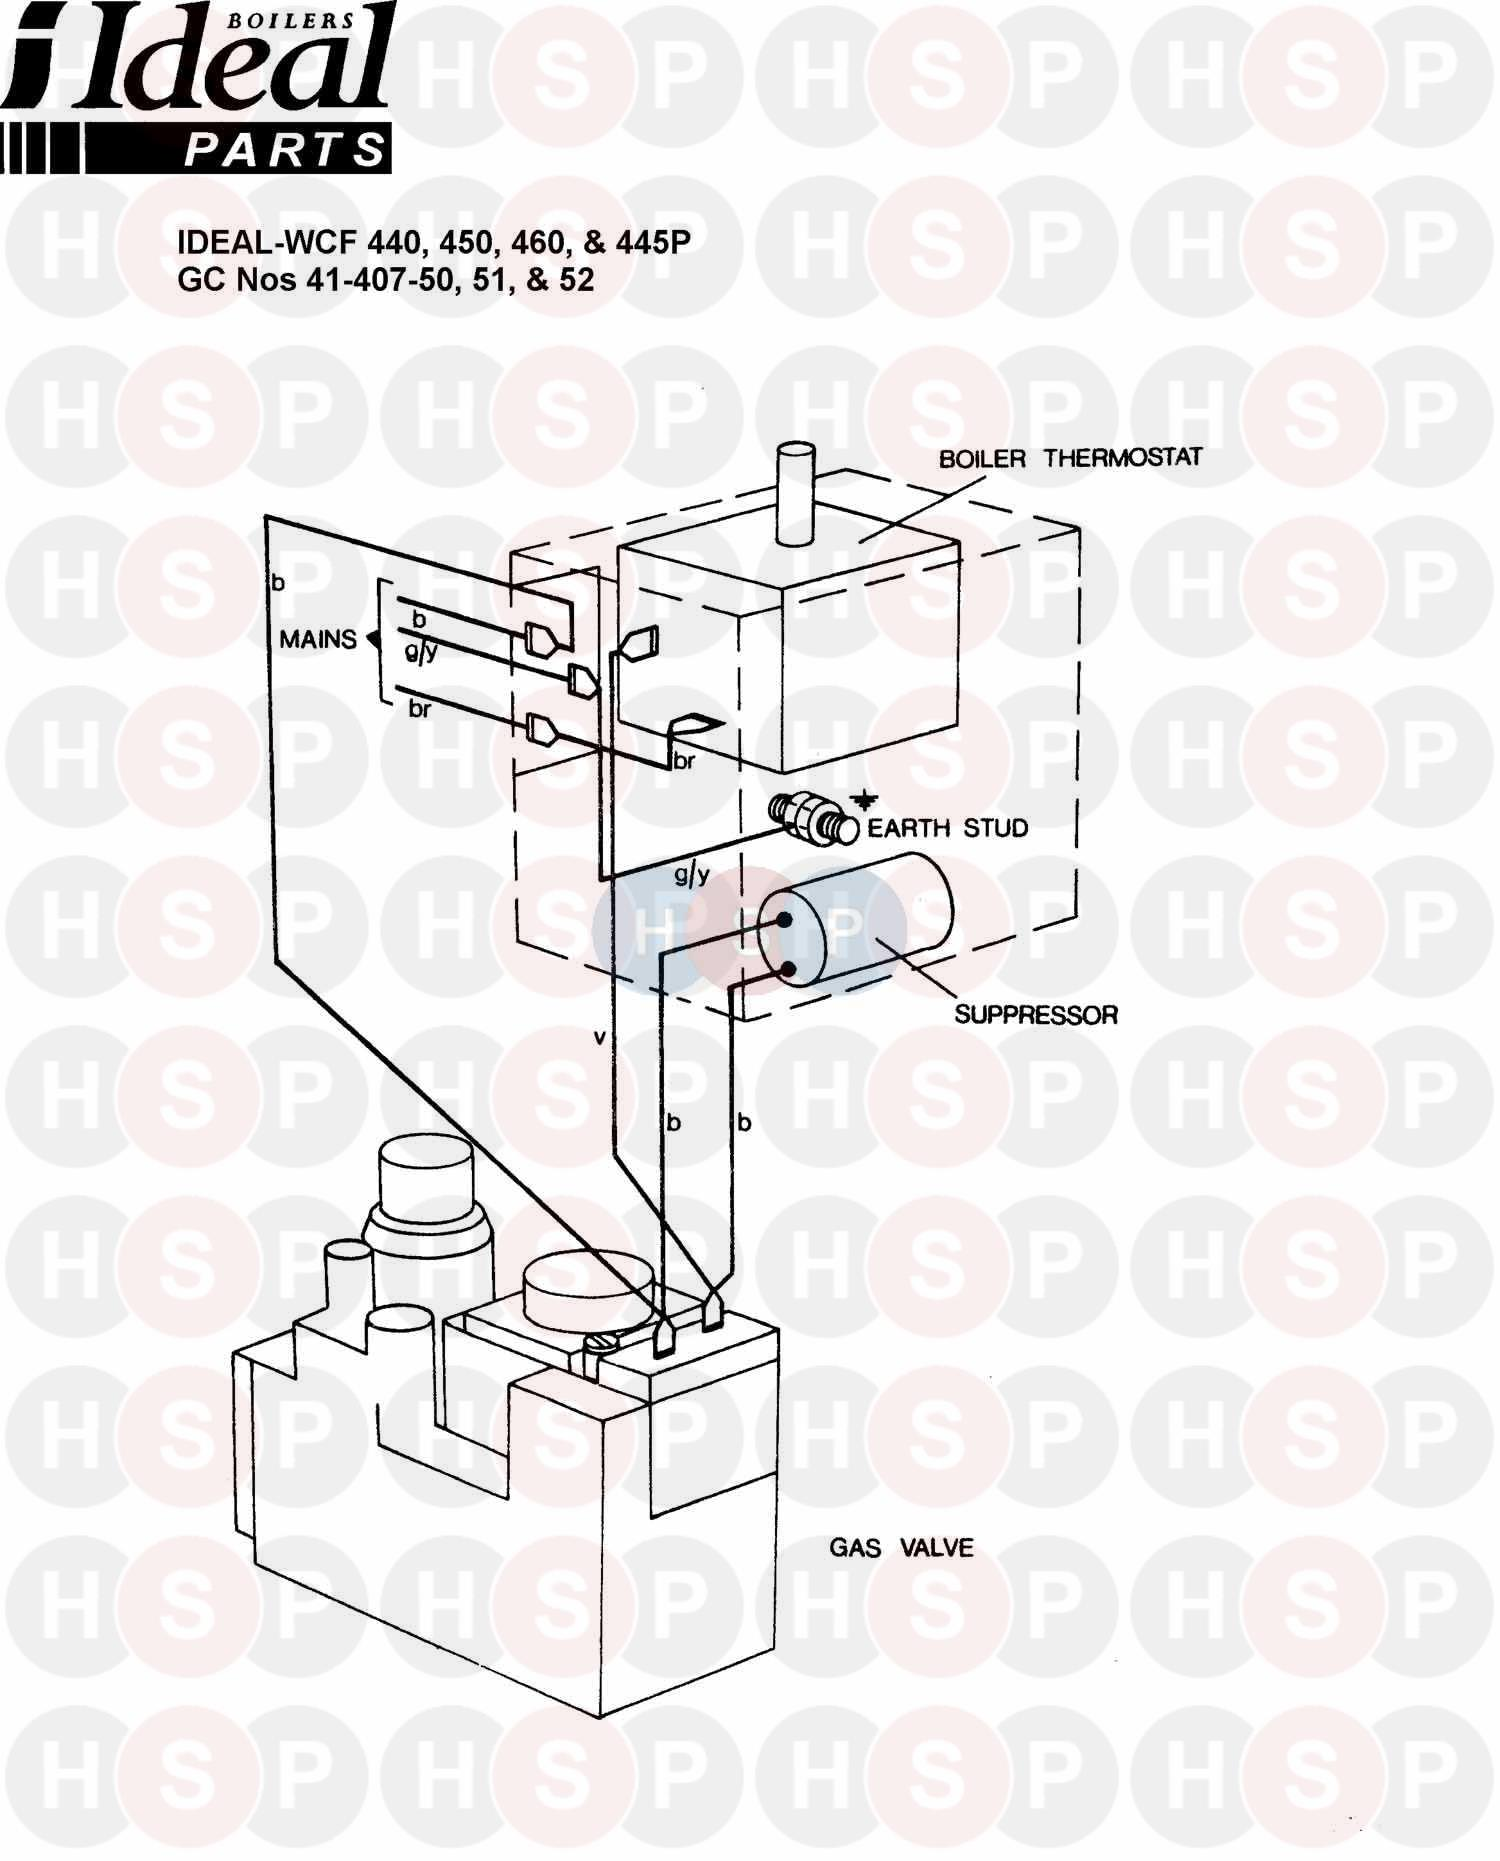 Ideal Concord Wcf 440 Wiring Diagram 1 Heating Spare Parts 4 Click The To Open It On A New Page